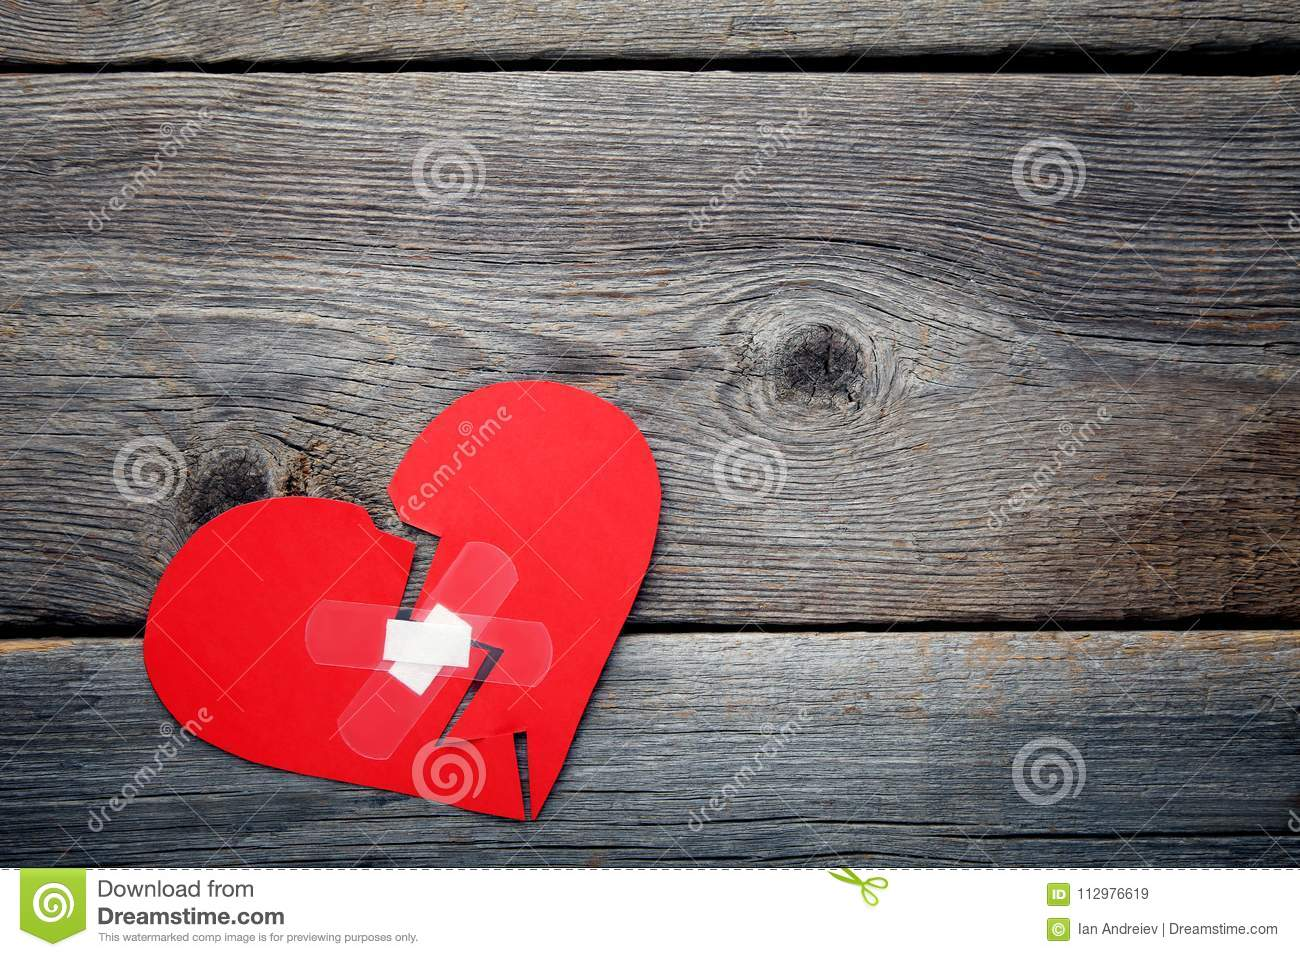 Red heart with adhesive bandage